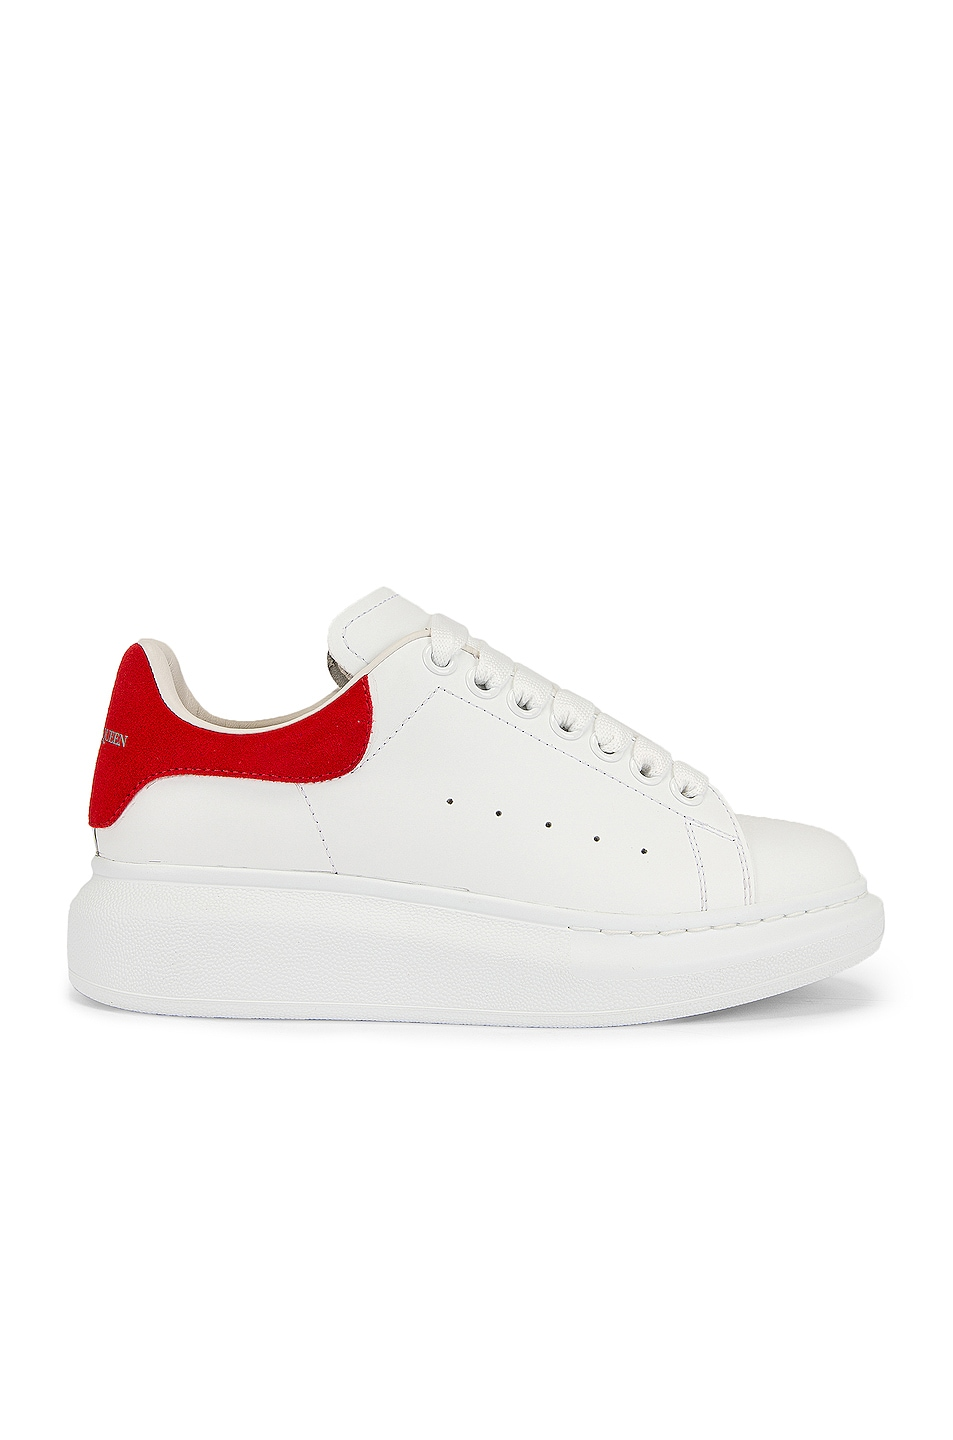 Image 1 of Alexander McQueen Leather Platform Sneakers in White & Red